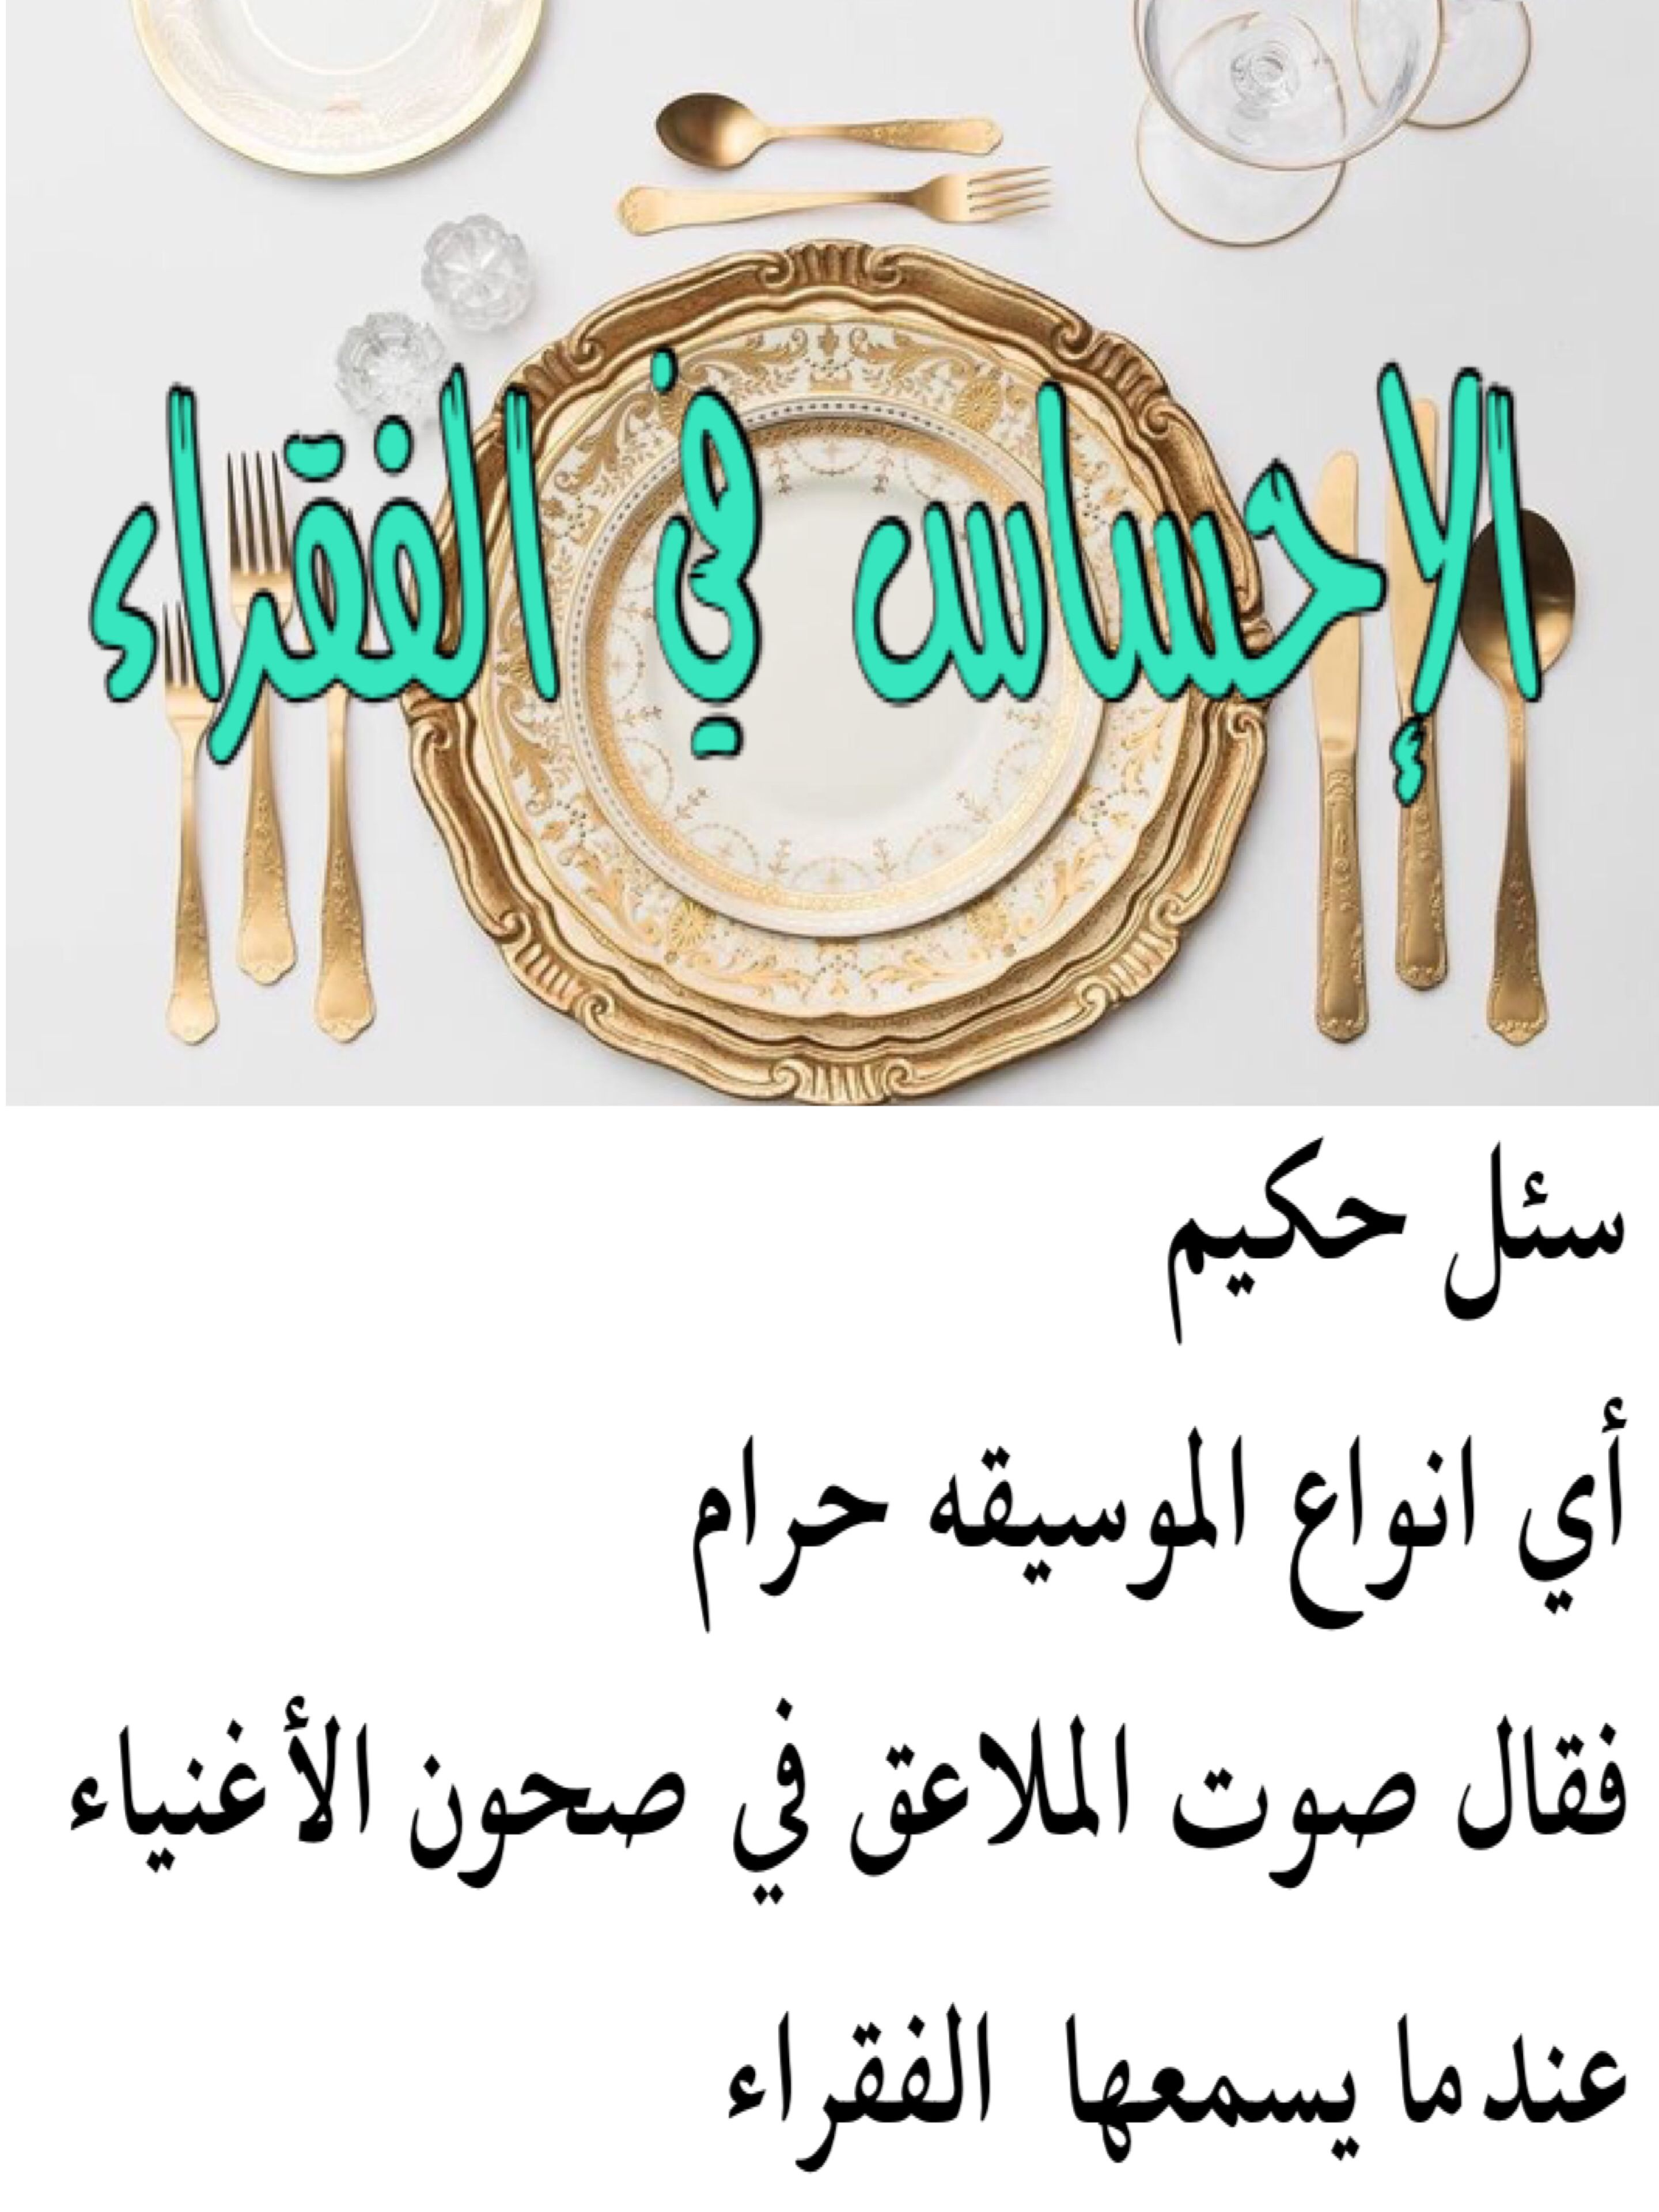 Pin By Manar On حكم Art Arabic Calligraphy Calligraphy